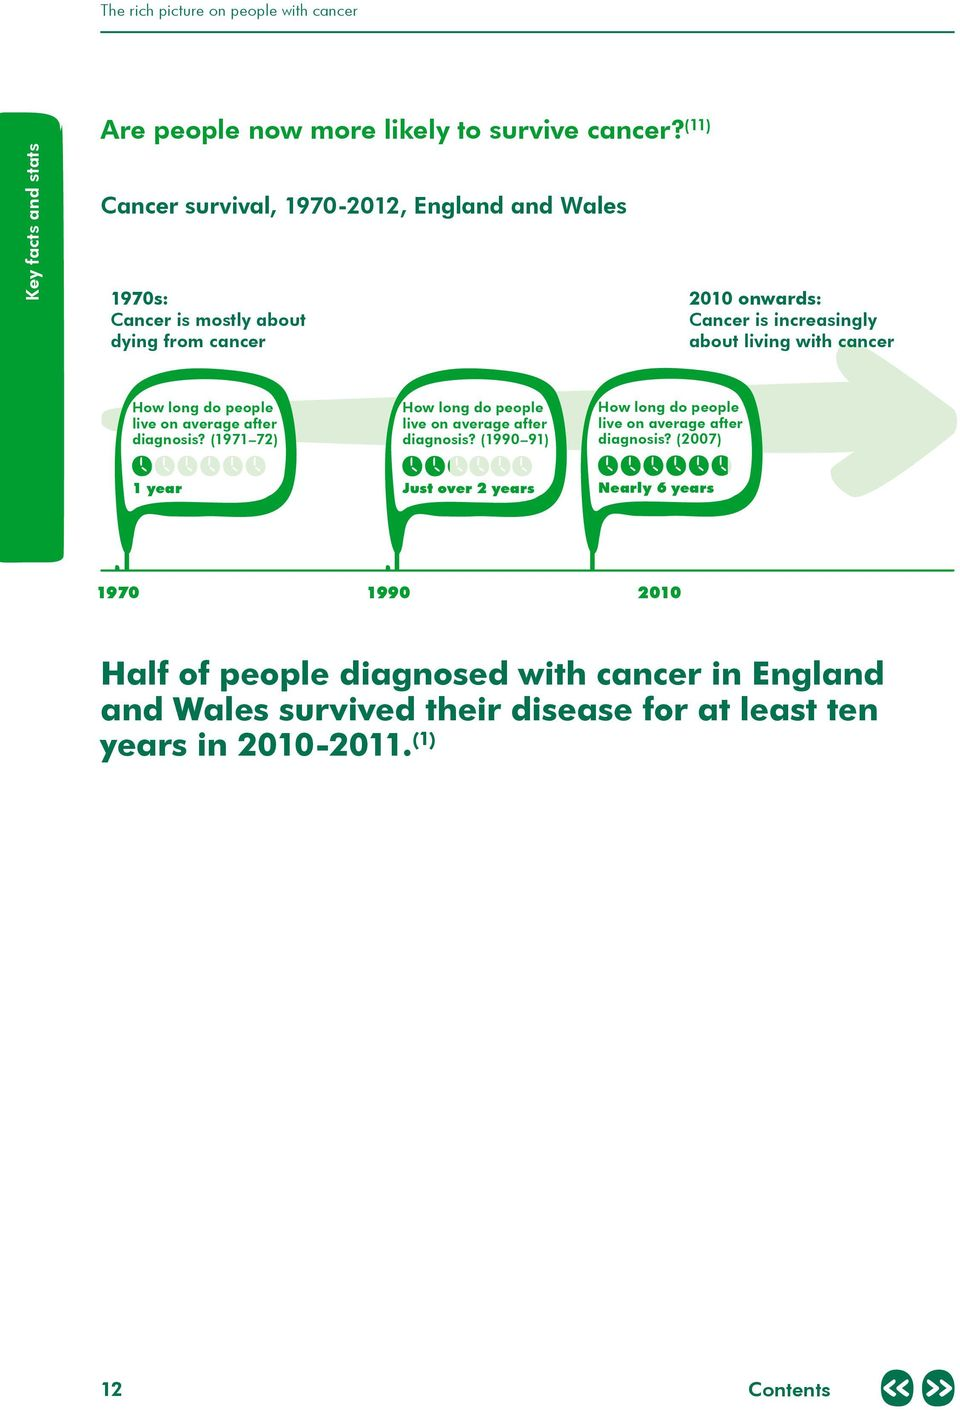 cancer How long do people live on average after diagnosis? (1971 72) How long do people live on average after diagnosis?